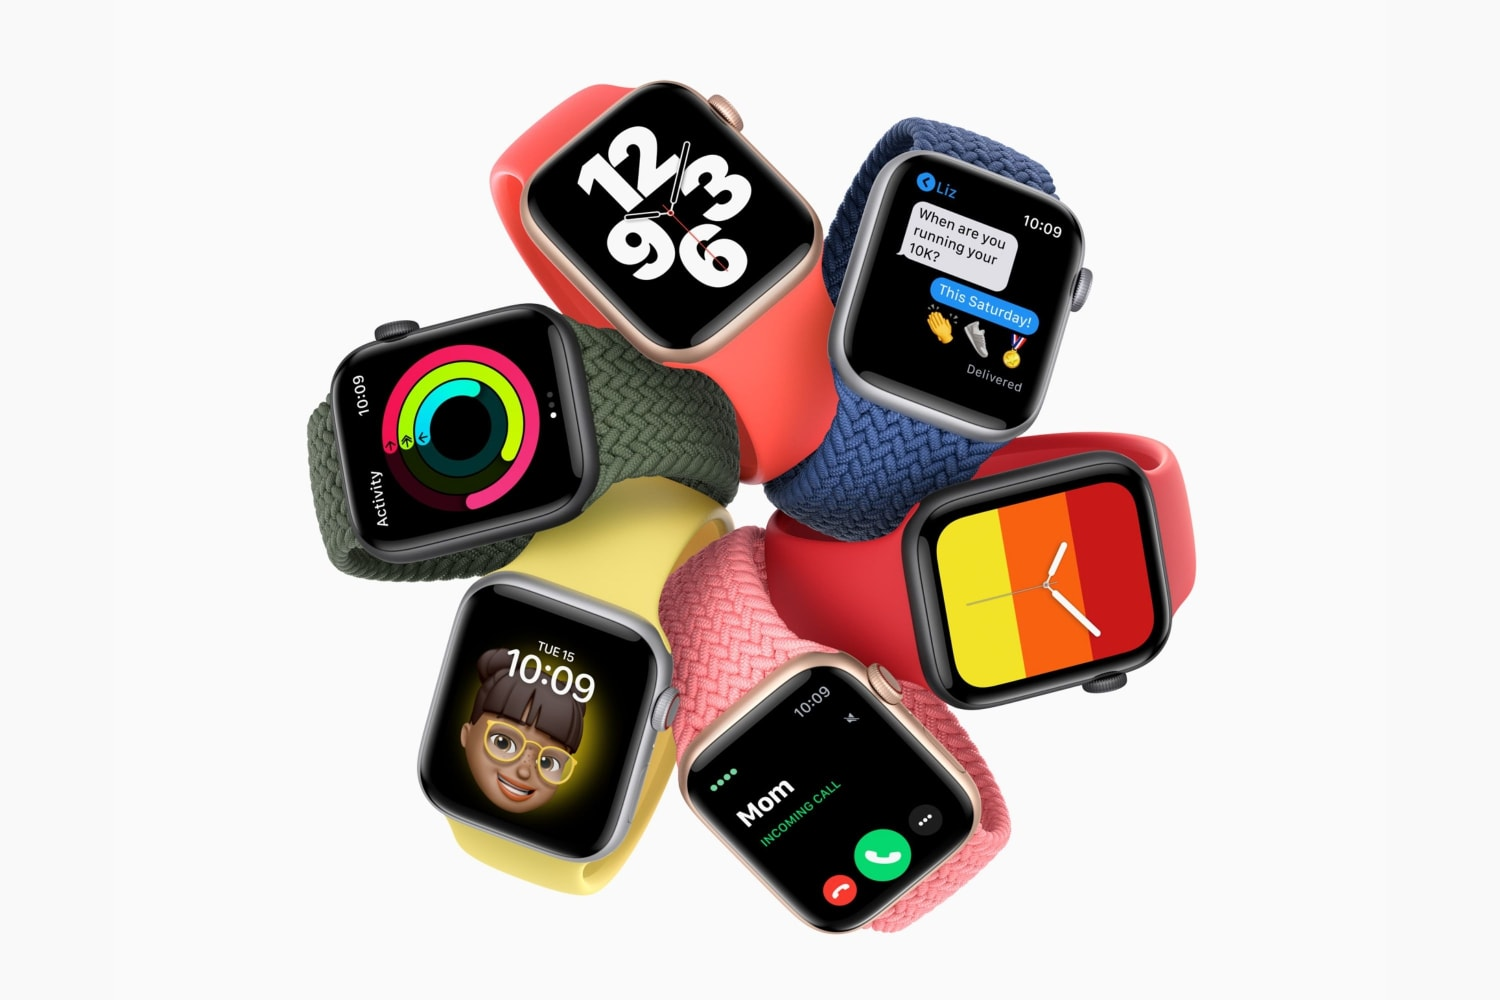 apple-watch-se-sports-s5-system-and-prioritizes-health-safety-and-fitness-like-the-watch-series-20200915-1